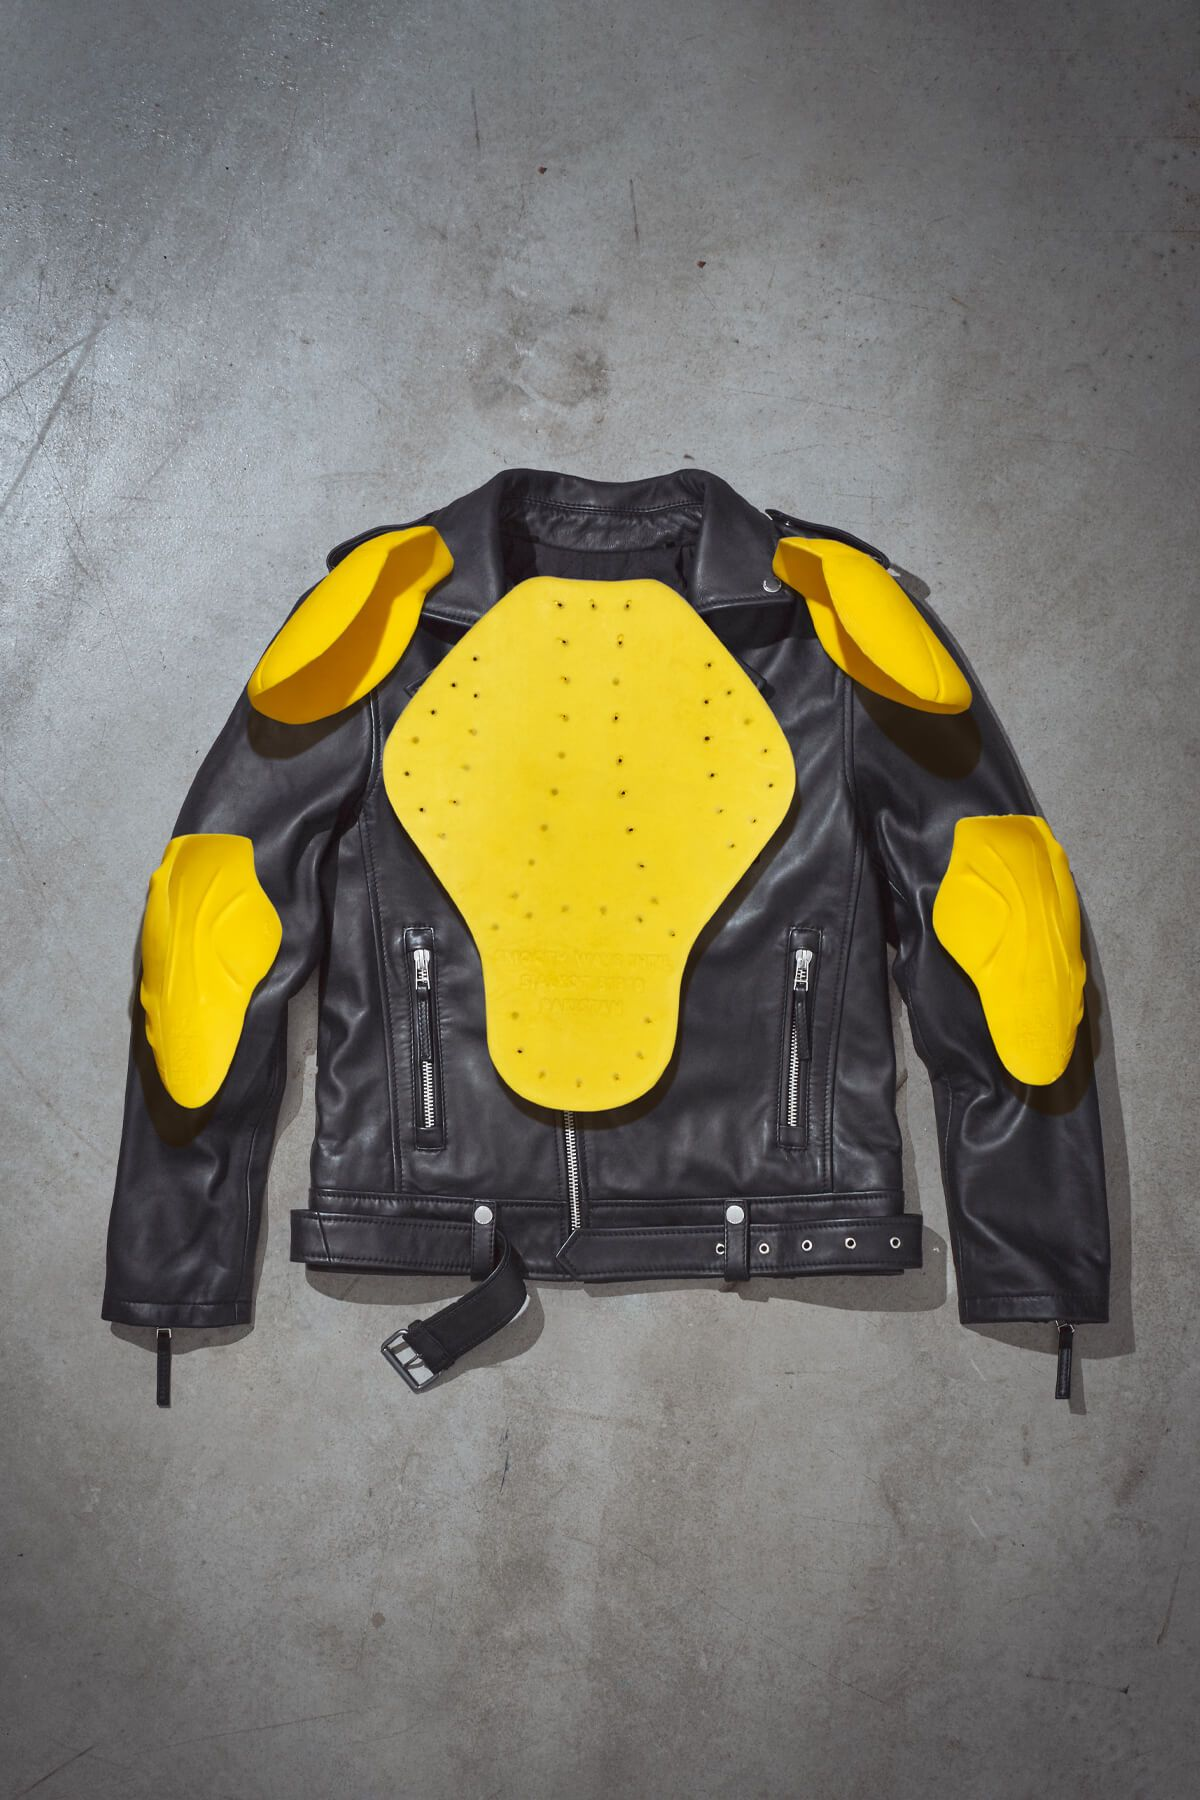 The Boda Skin's 'Voyager' leather motorcycle jacket with CE armour revealed